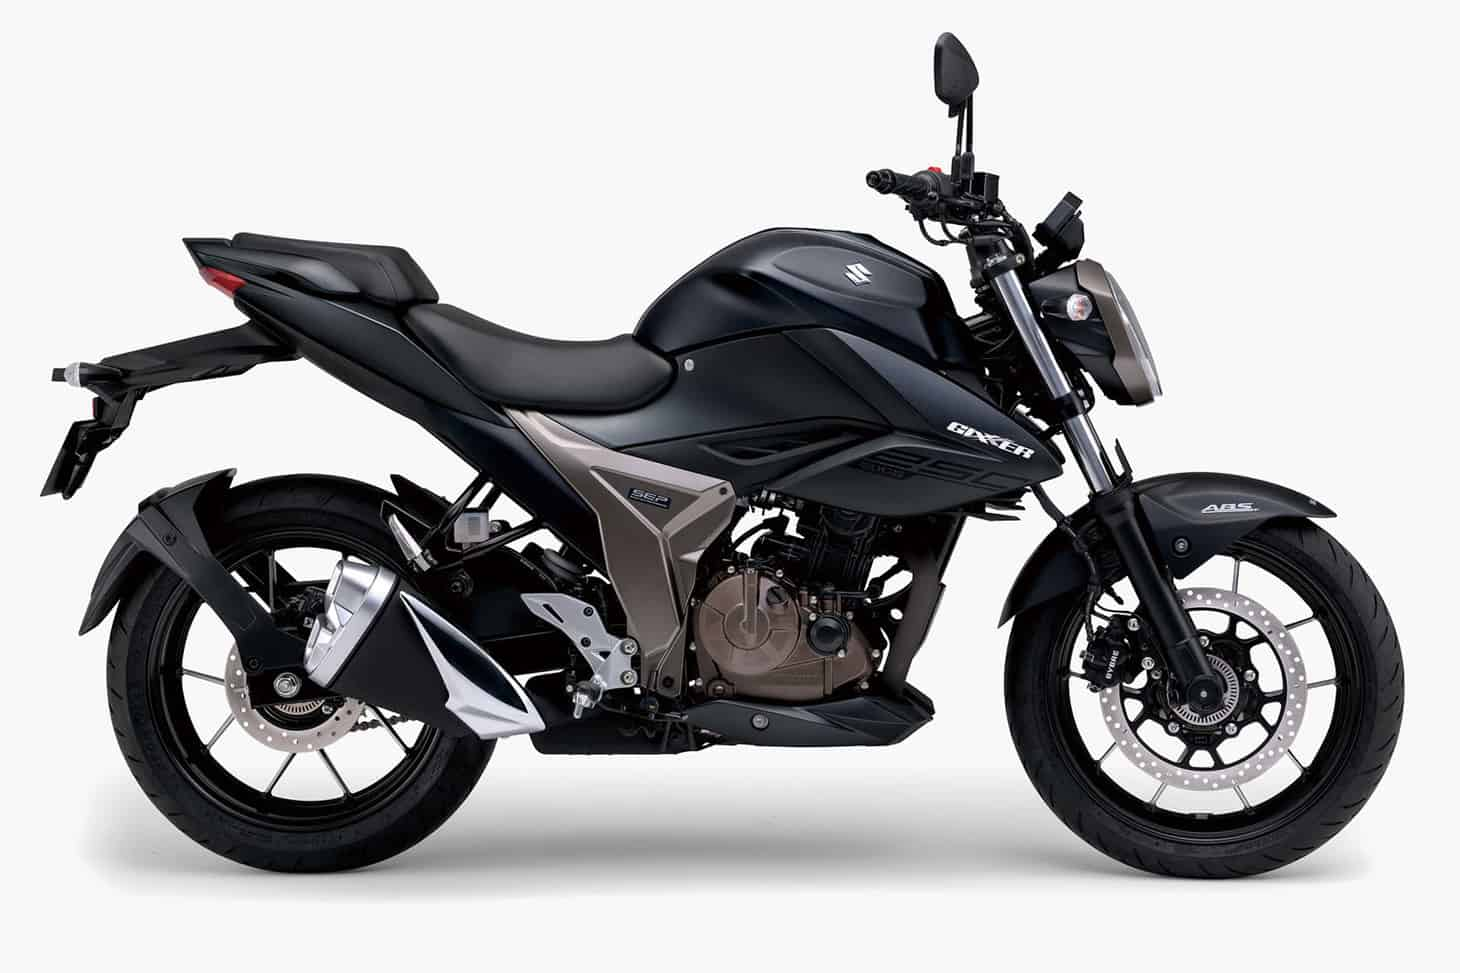 suzuki gixxer 250 bs6 side